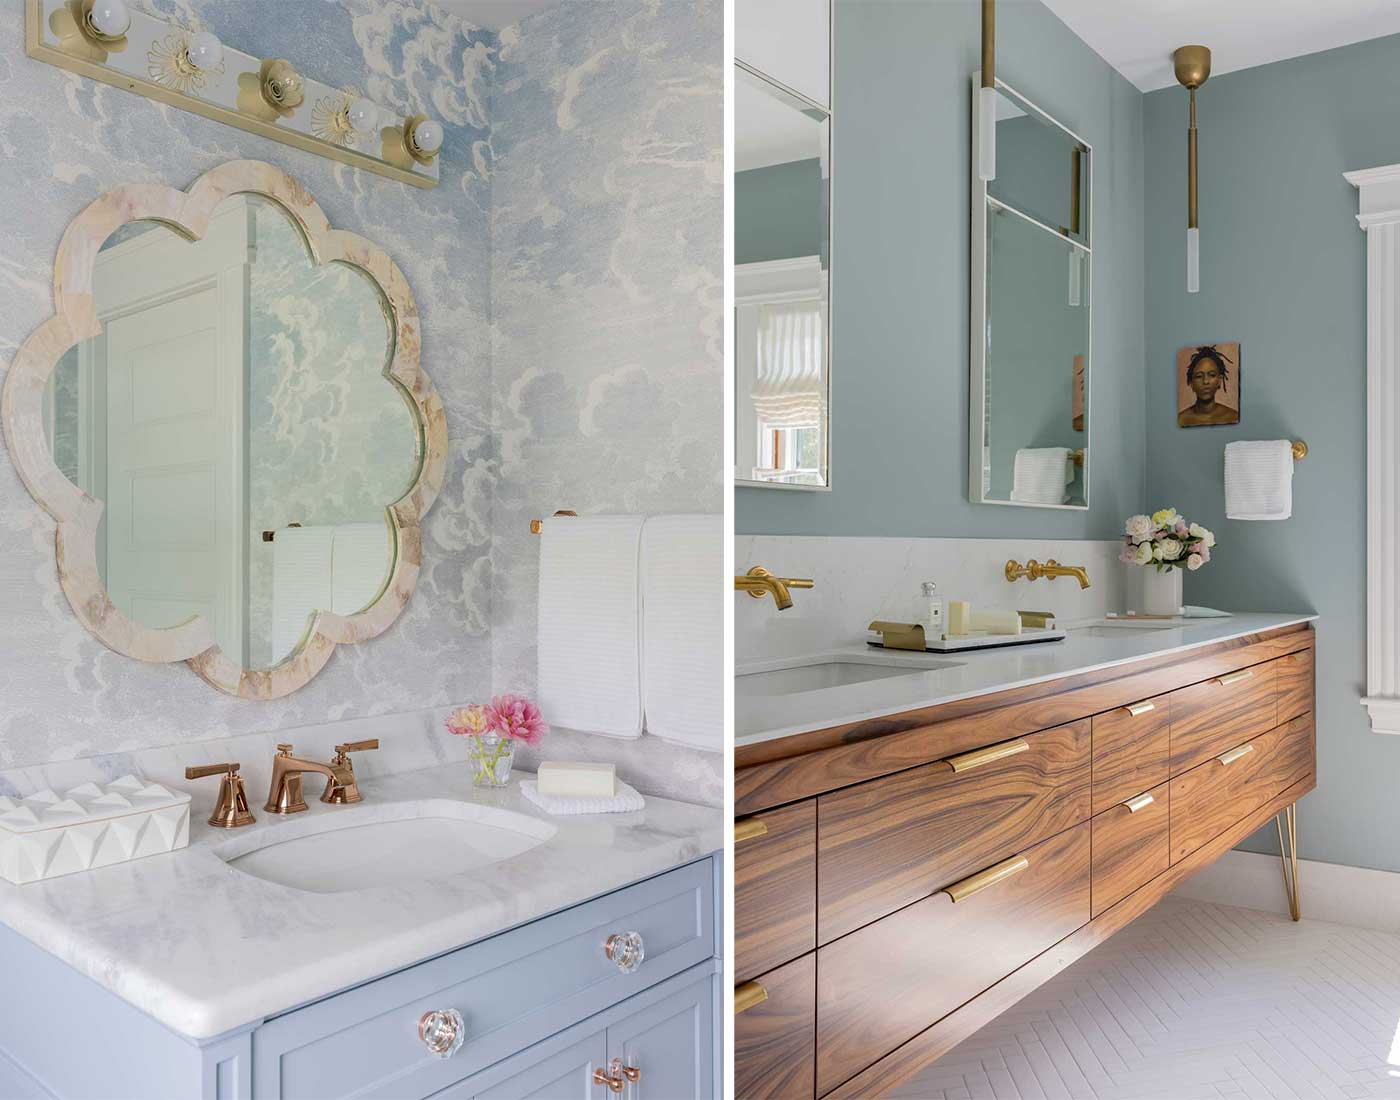 images of 2 bathrooms